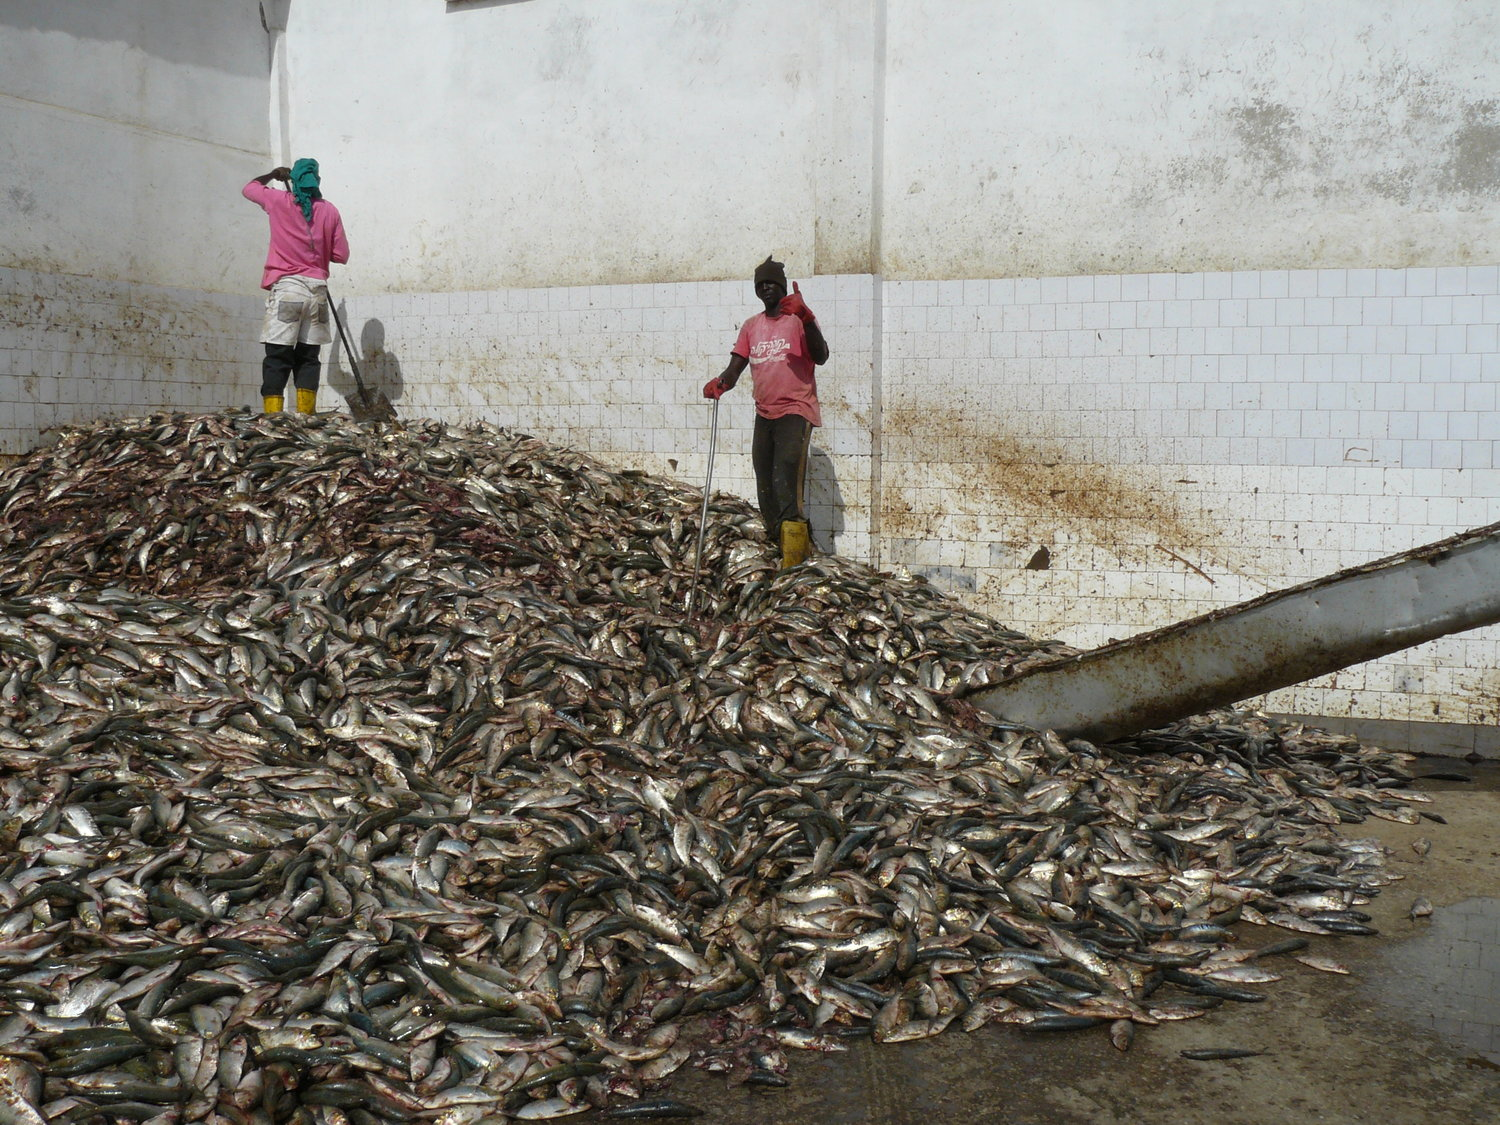 Export of Fish Meal from Africa a Threat to Millions in Africa, say Greenpeace